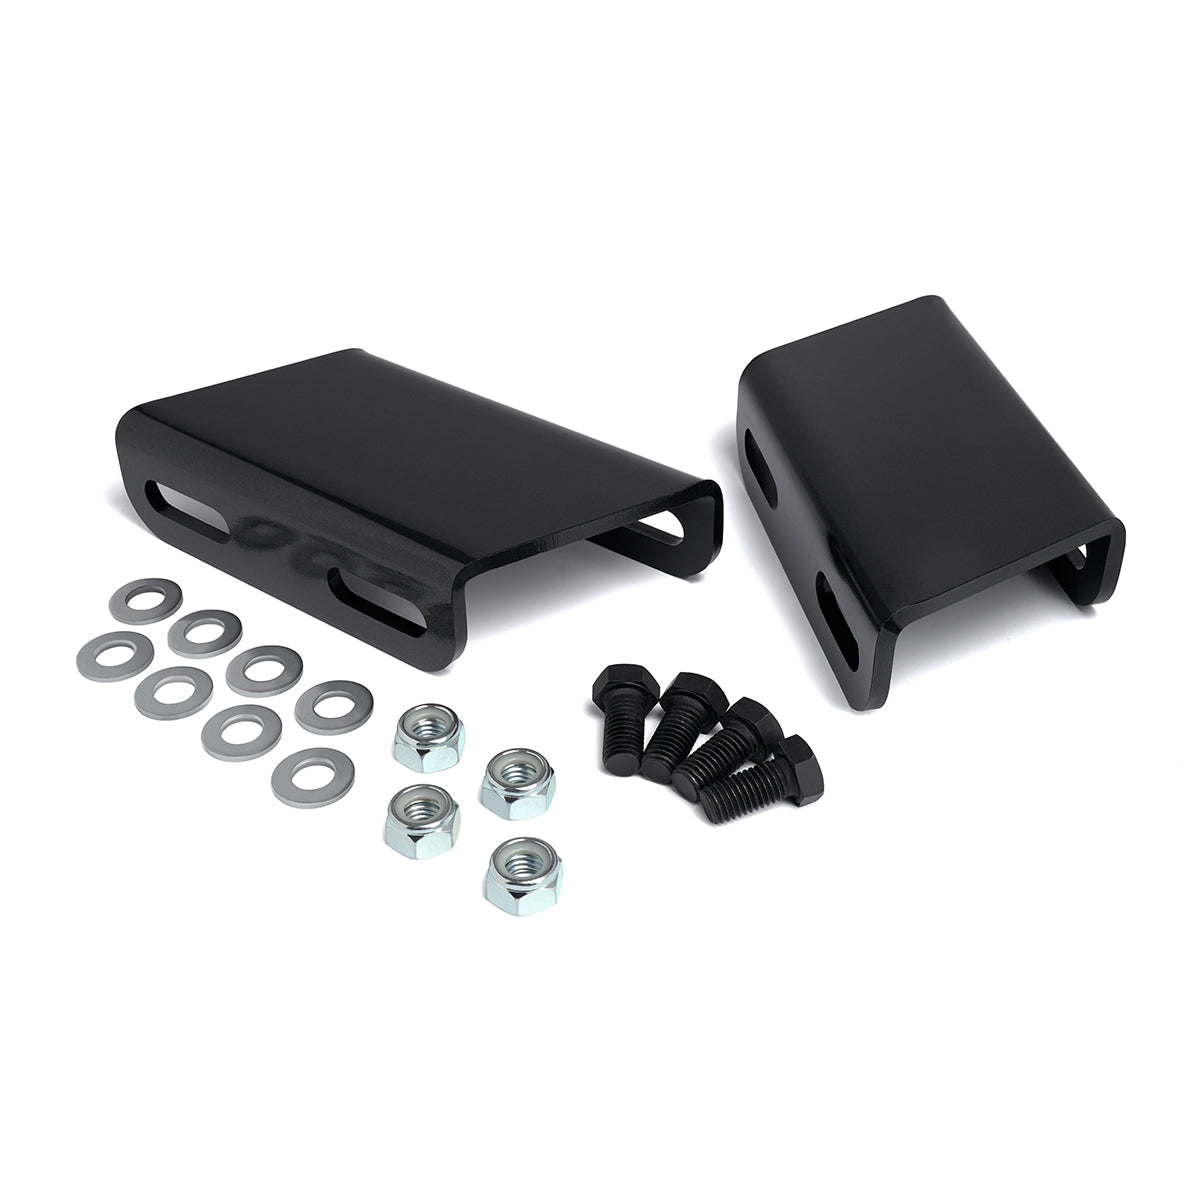 1994-2012 Dodge Ram 3500 4WD Front Lift Kit with Sway Bar Drop Bracket